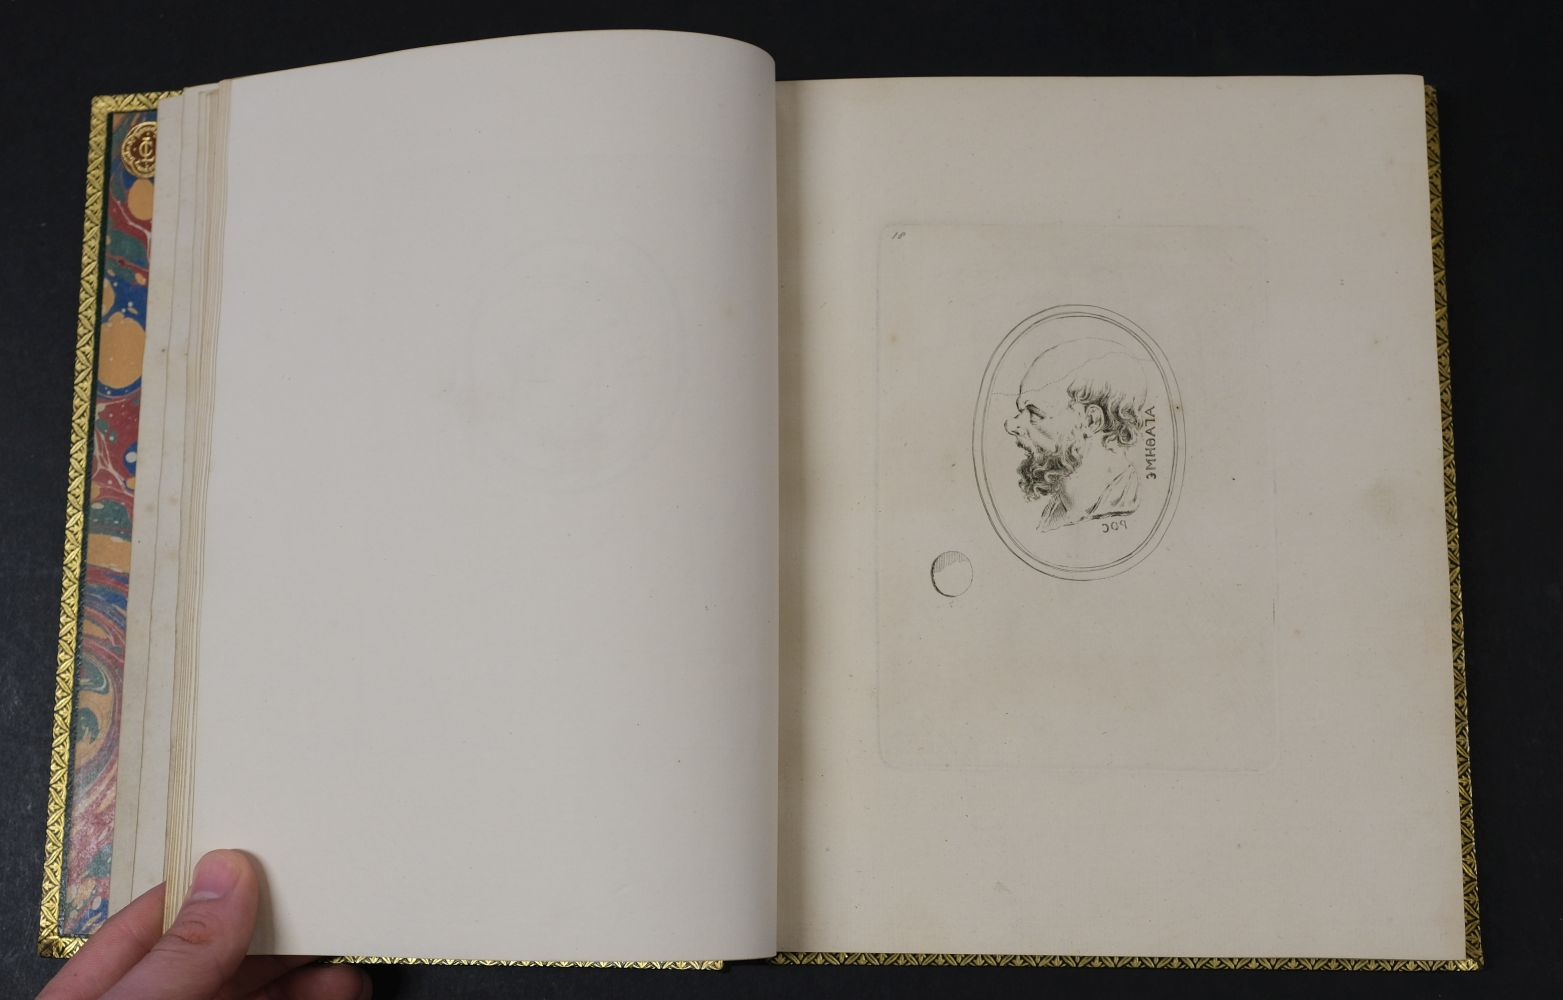 Devonshire Gems. Duke of Devonshire's Collection of Gems, privately printed, circa 1790 - Image 12 of 16